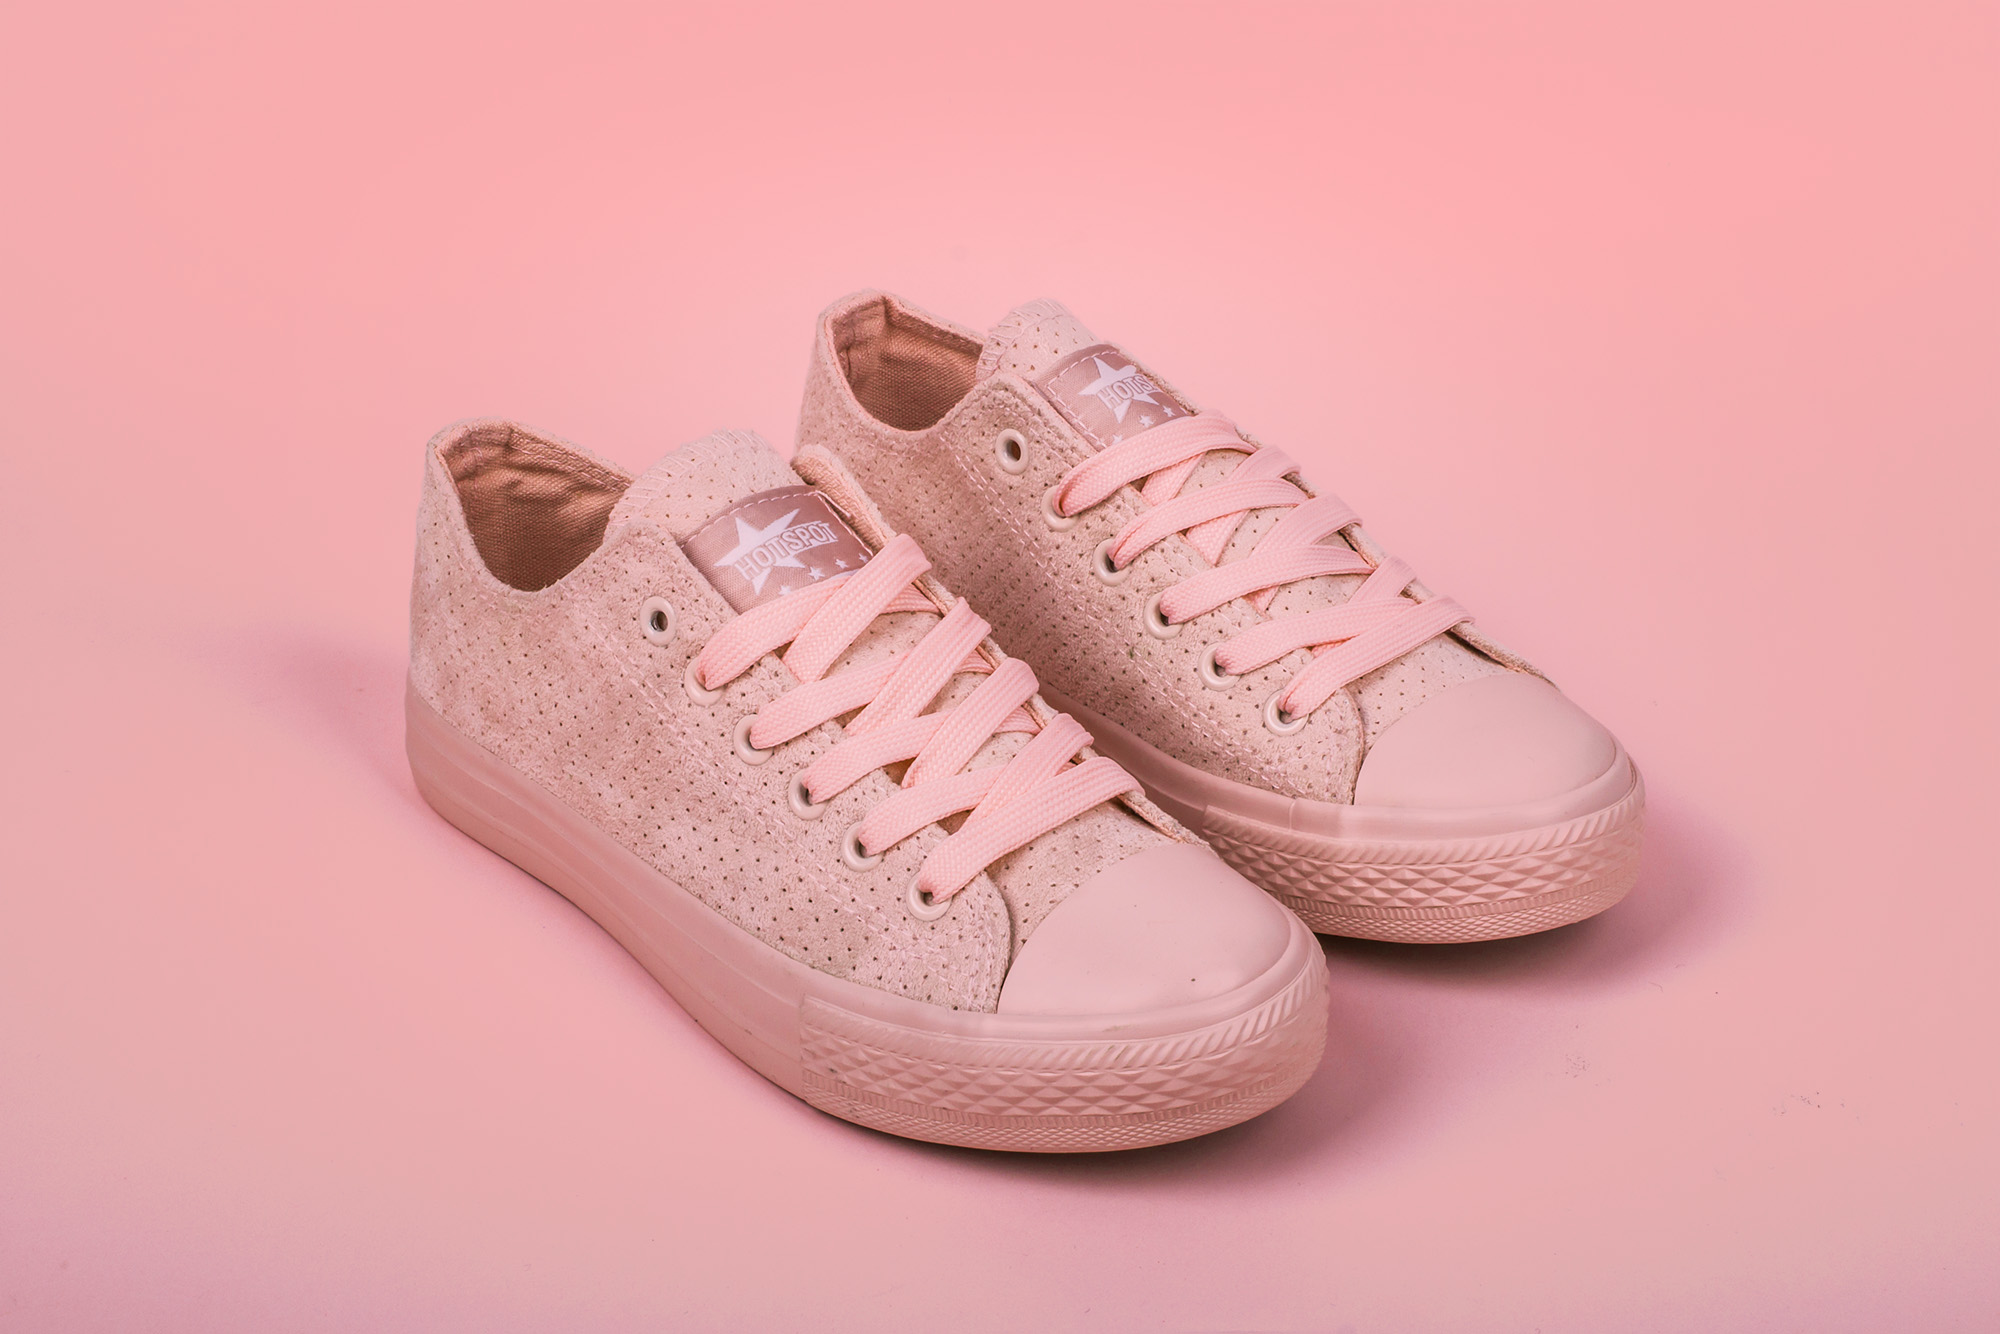 Sneakers product cover photography veronica popova 1